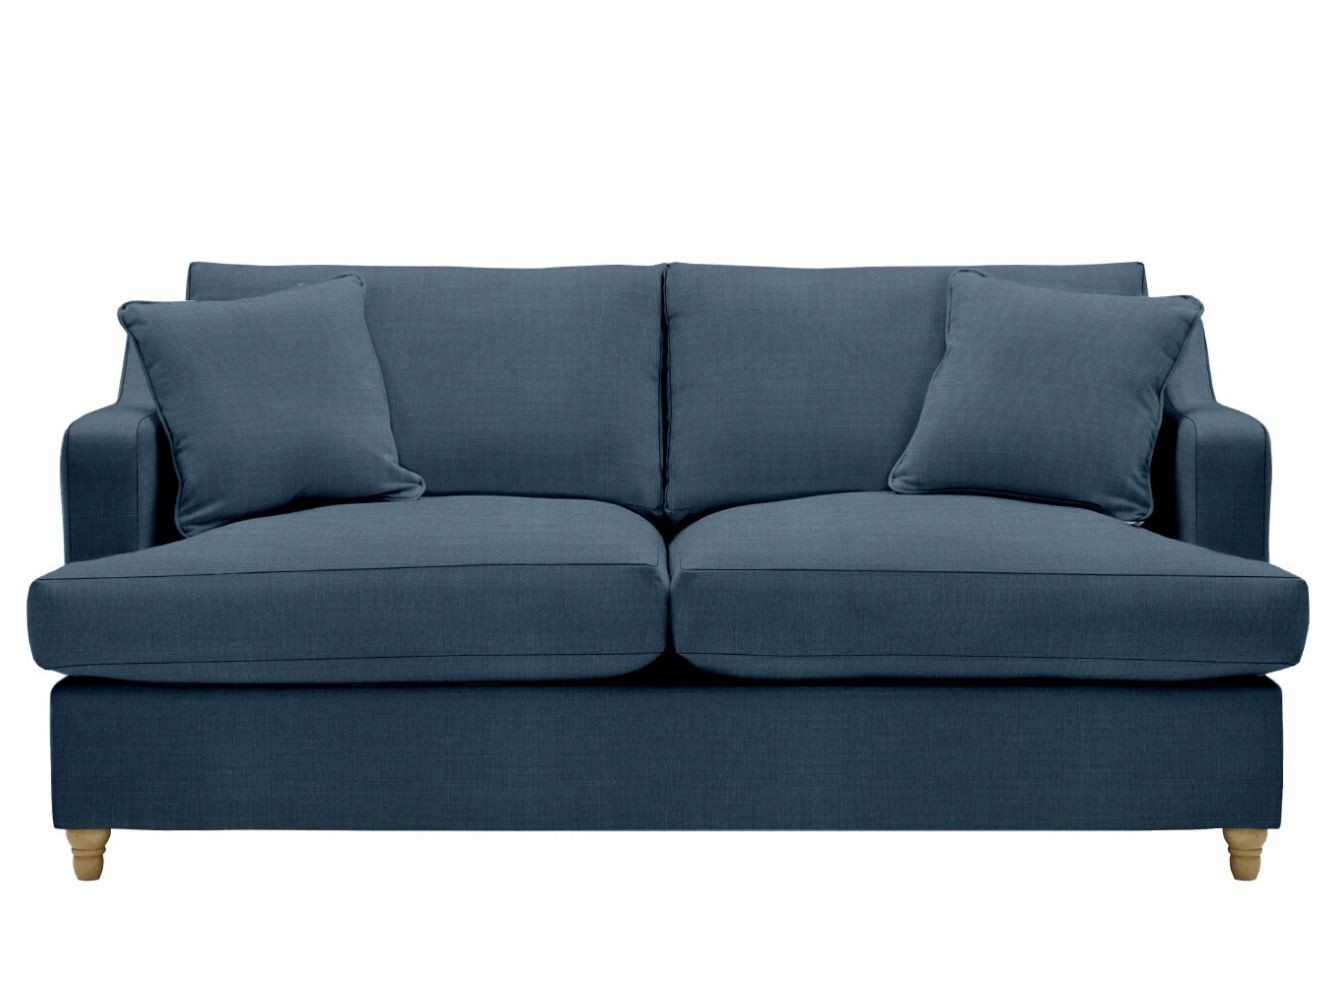 This is how I look in Brushed Cotton Midnight Blue with siliconized hollow fibre seat cushions